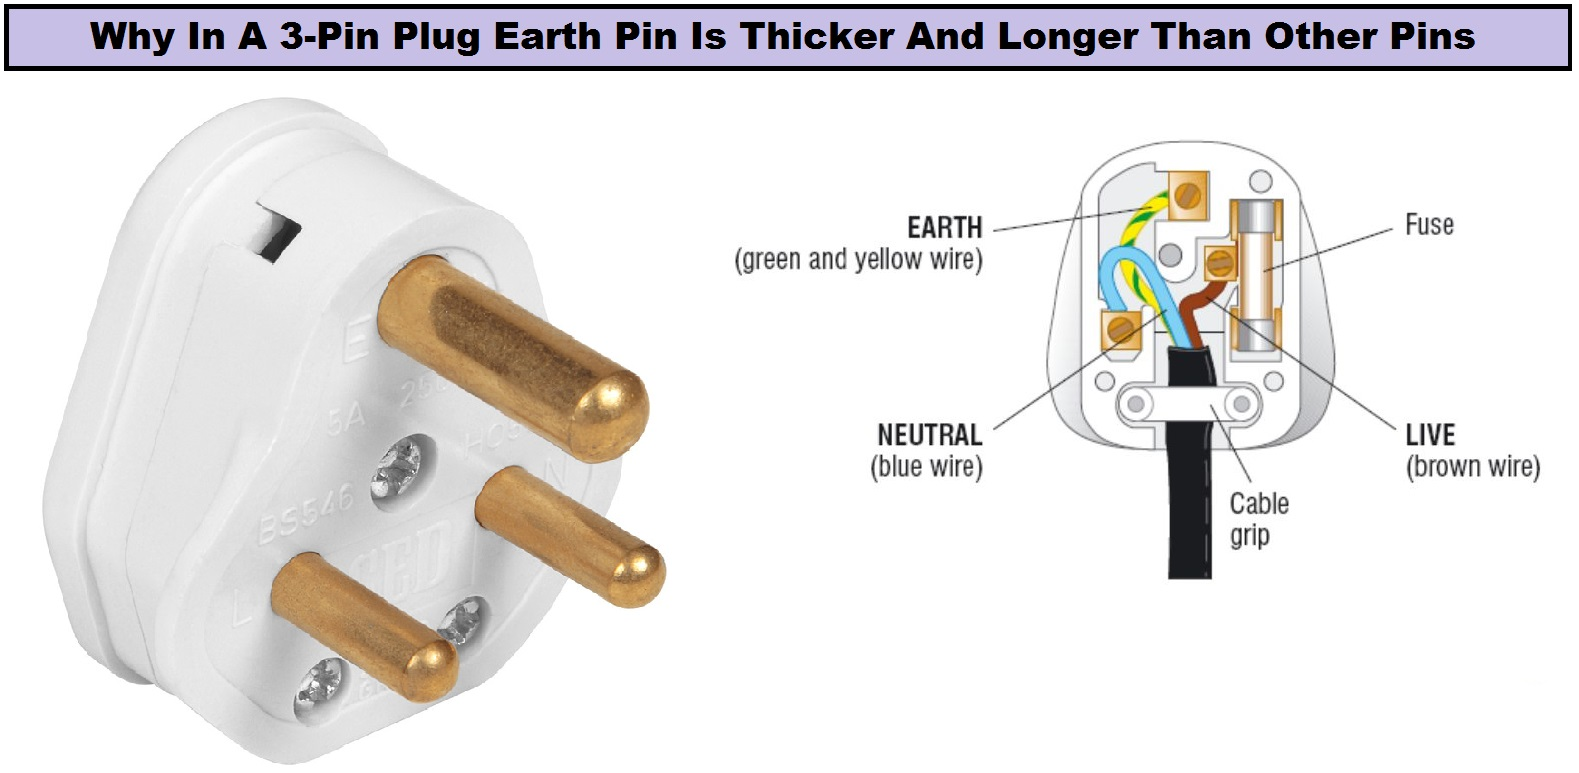 3 pin plug wiring diagram sa 4587  electrical plug wiring also 3 pin electrical plugs also  plug wiring also 3 pin electrical plugs